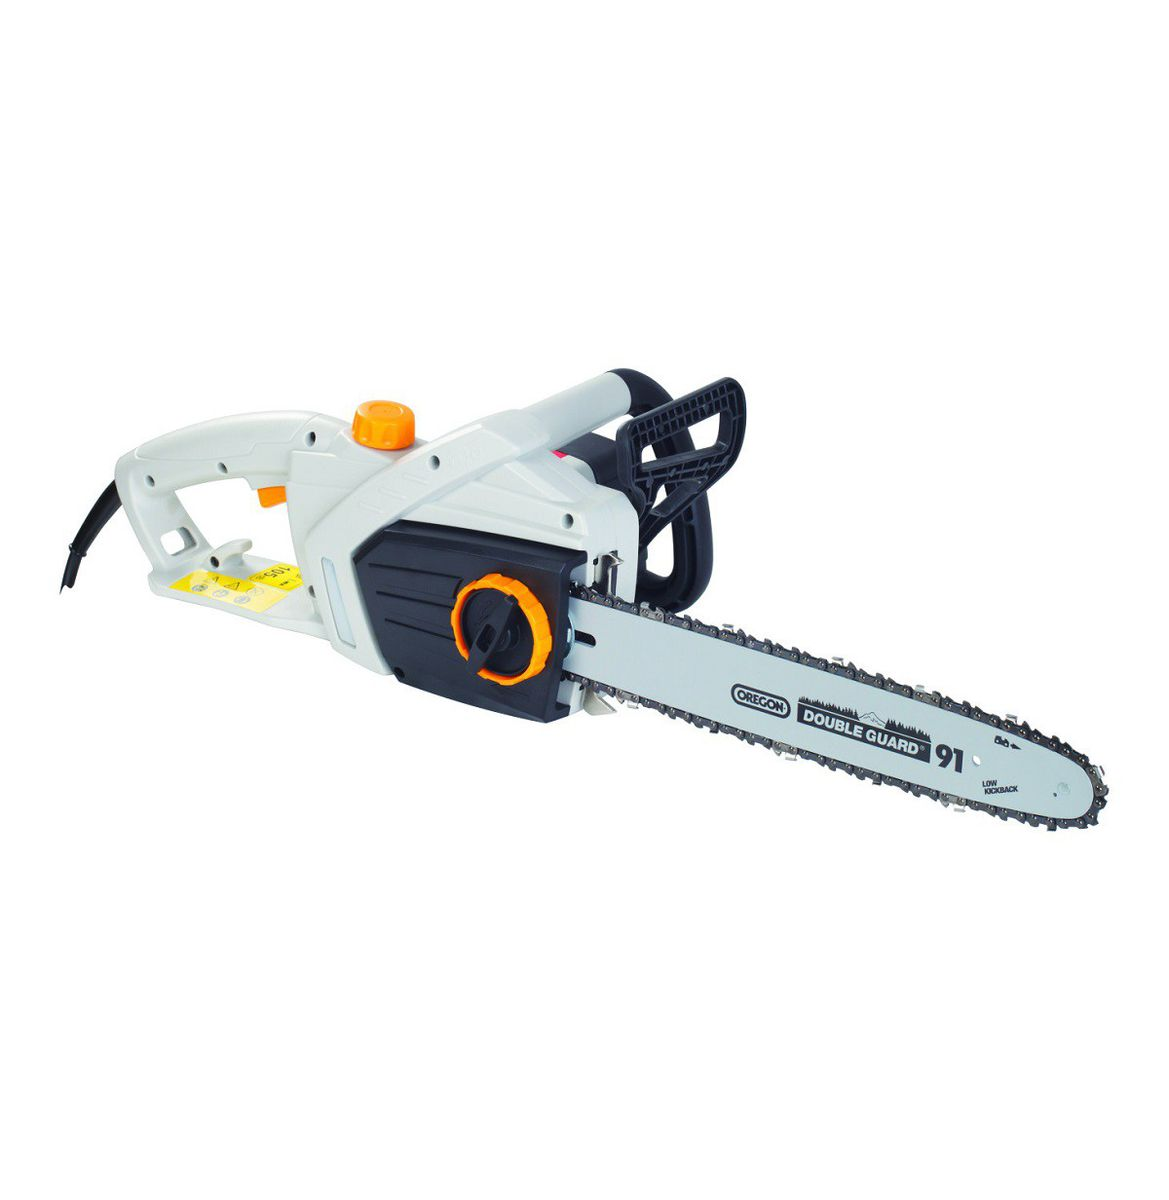 Ryobi 1800w electric chain saw grey buy online in south africa ryobi 1800w electric chain saw grey loading zoom keyboard keysfo